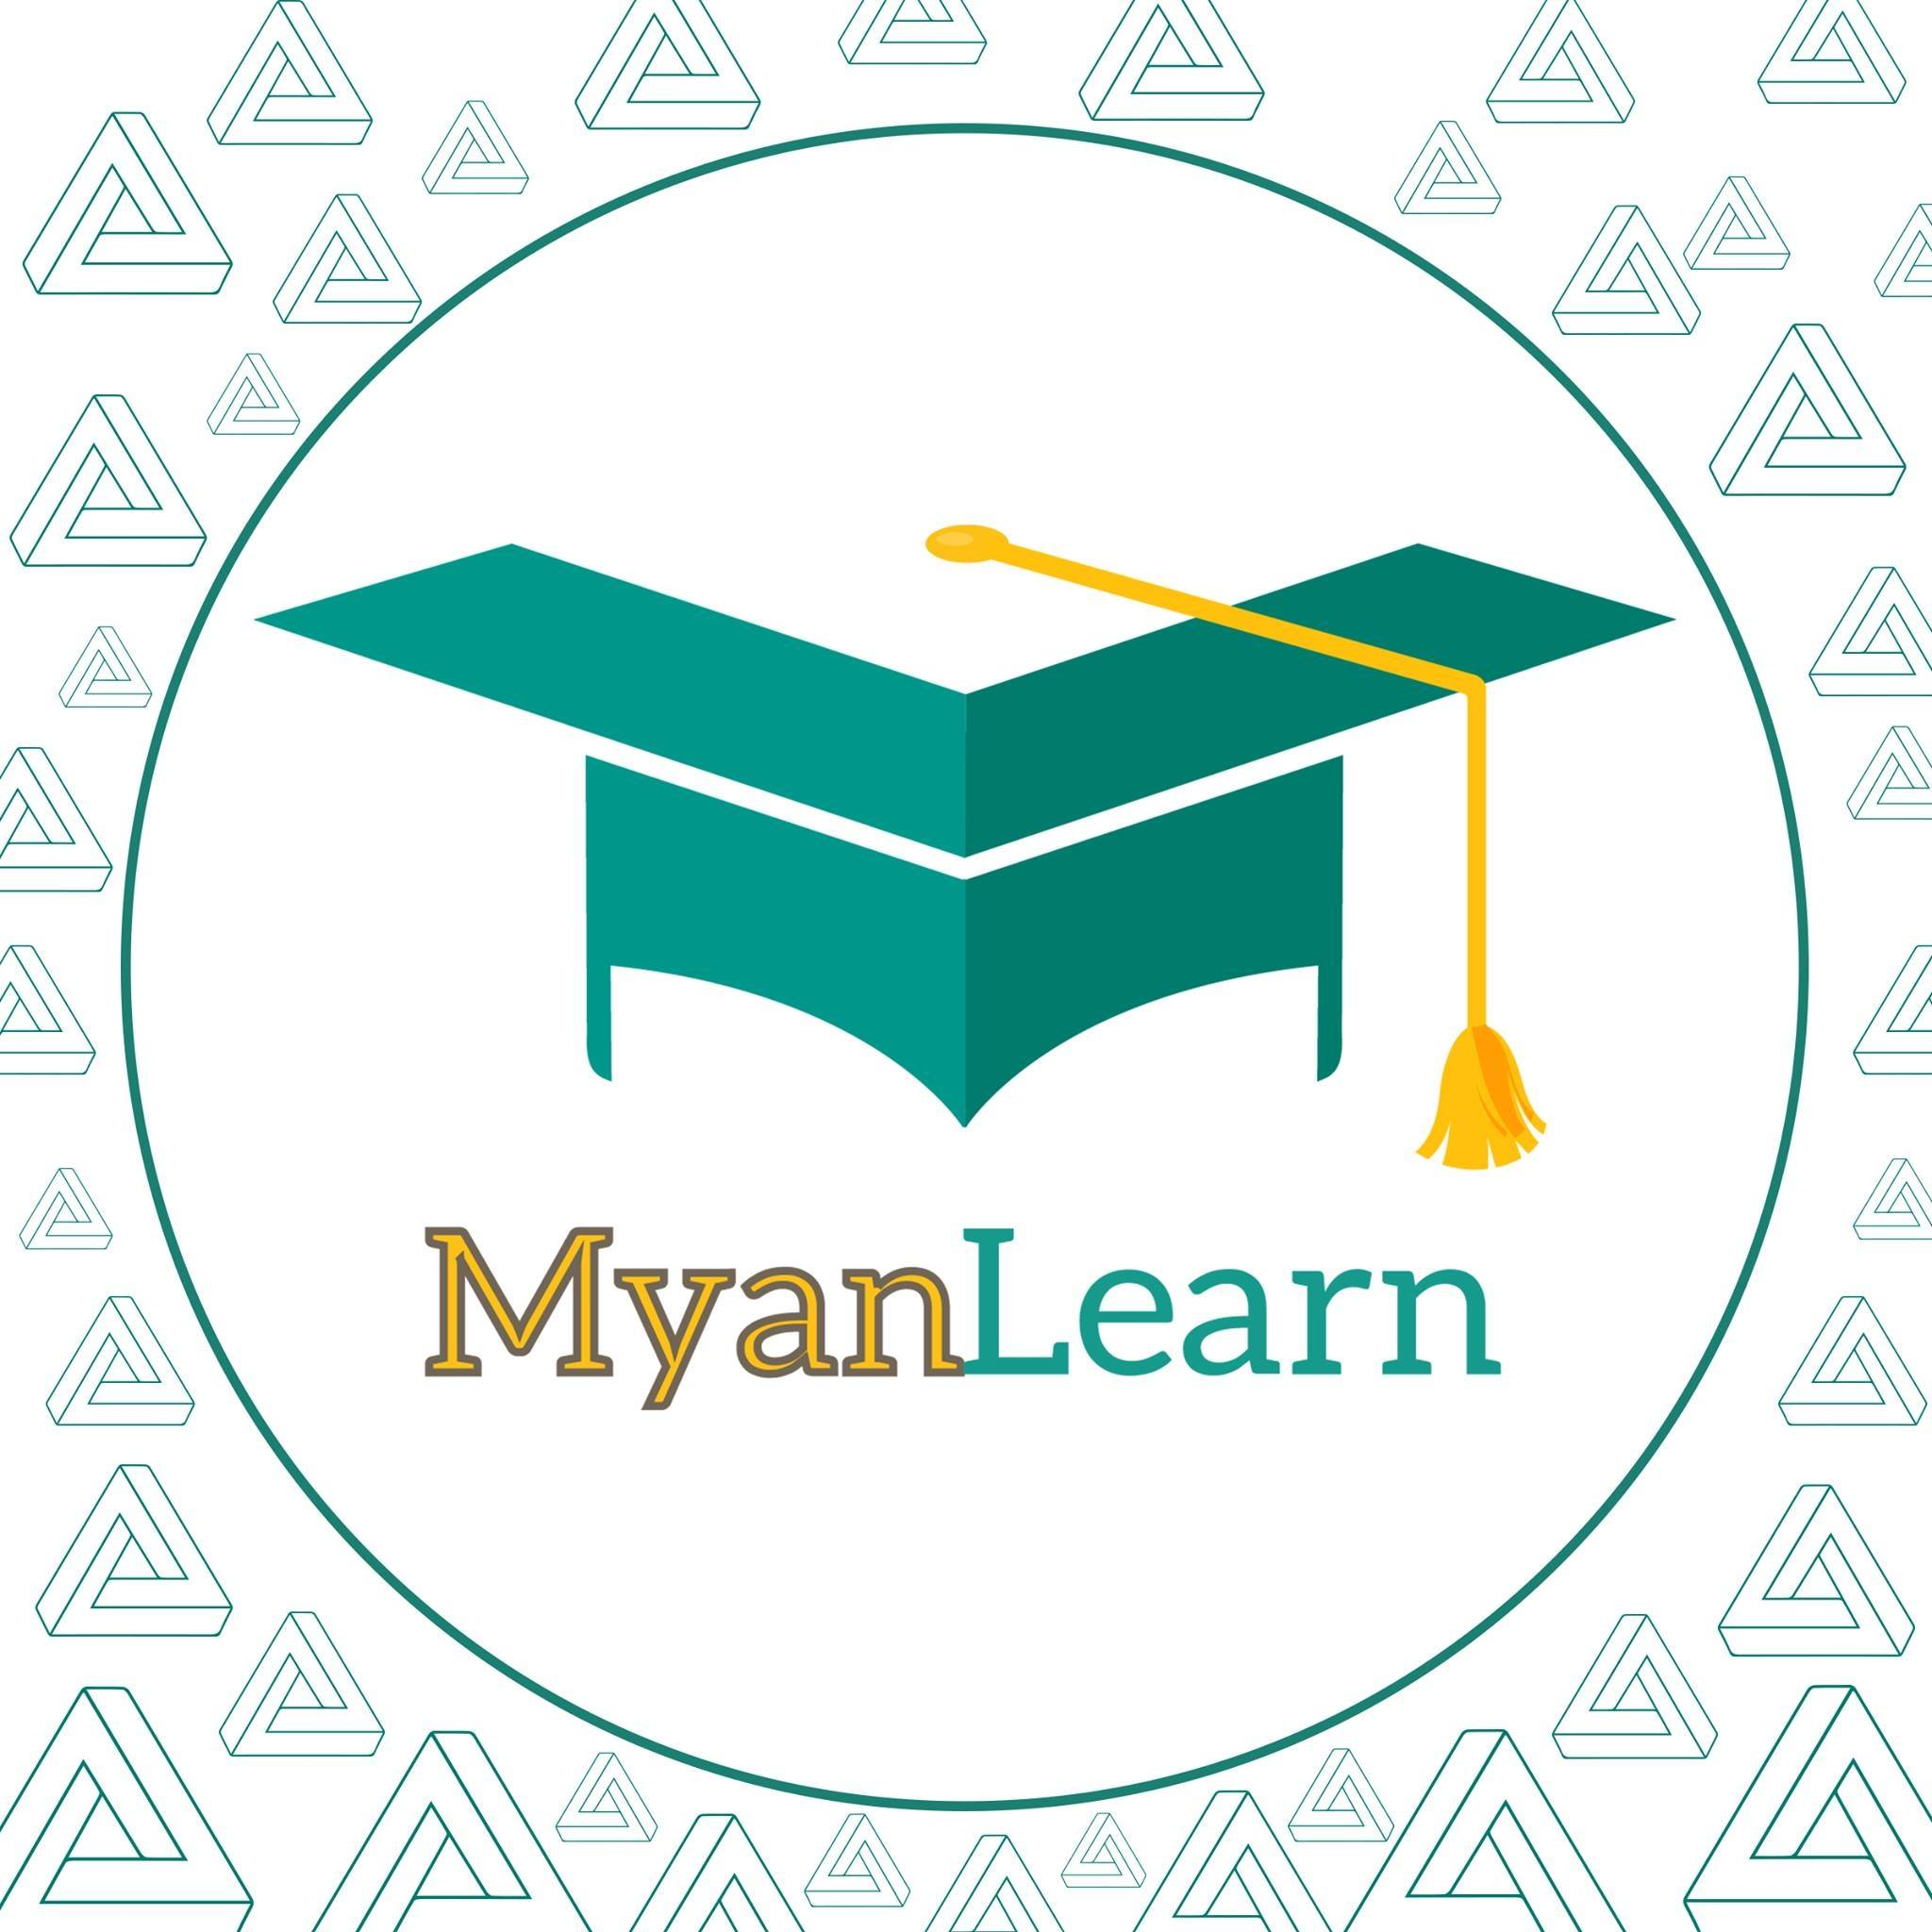 MyanLearn team